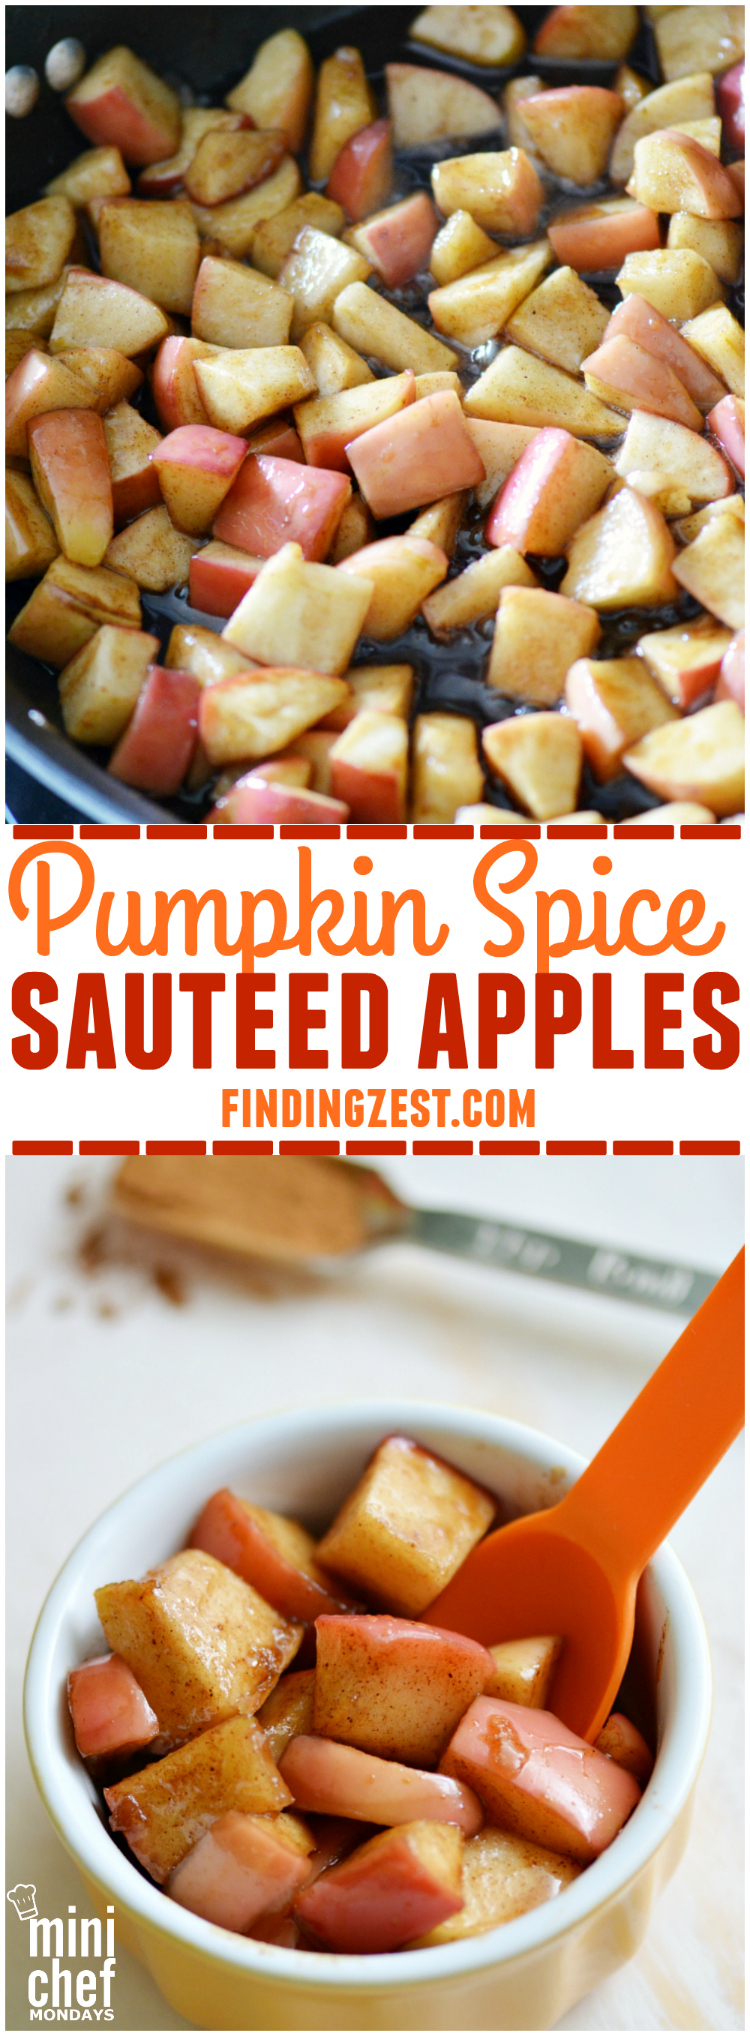 Pumpkin Spice Sauteed Apples